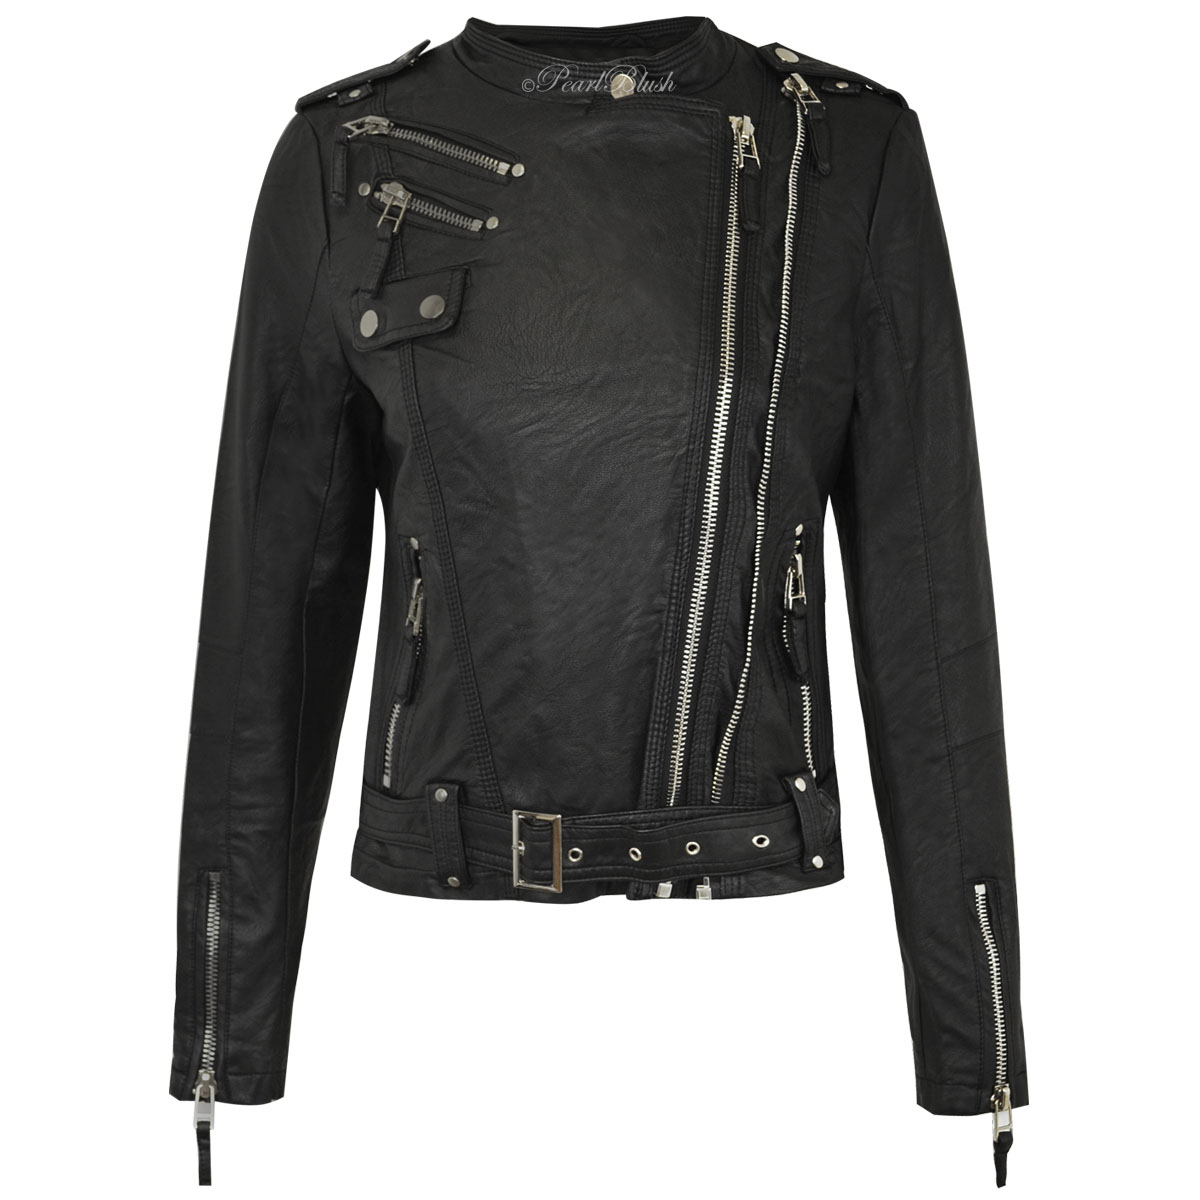 Instantly toughen up your look by topping it with a classic biker jacket cut from sleek faux leather and crowned with a lush faux fur collar. % polyurethane faux leather with 53% modacrylic, 47% acrylic faux .